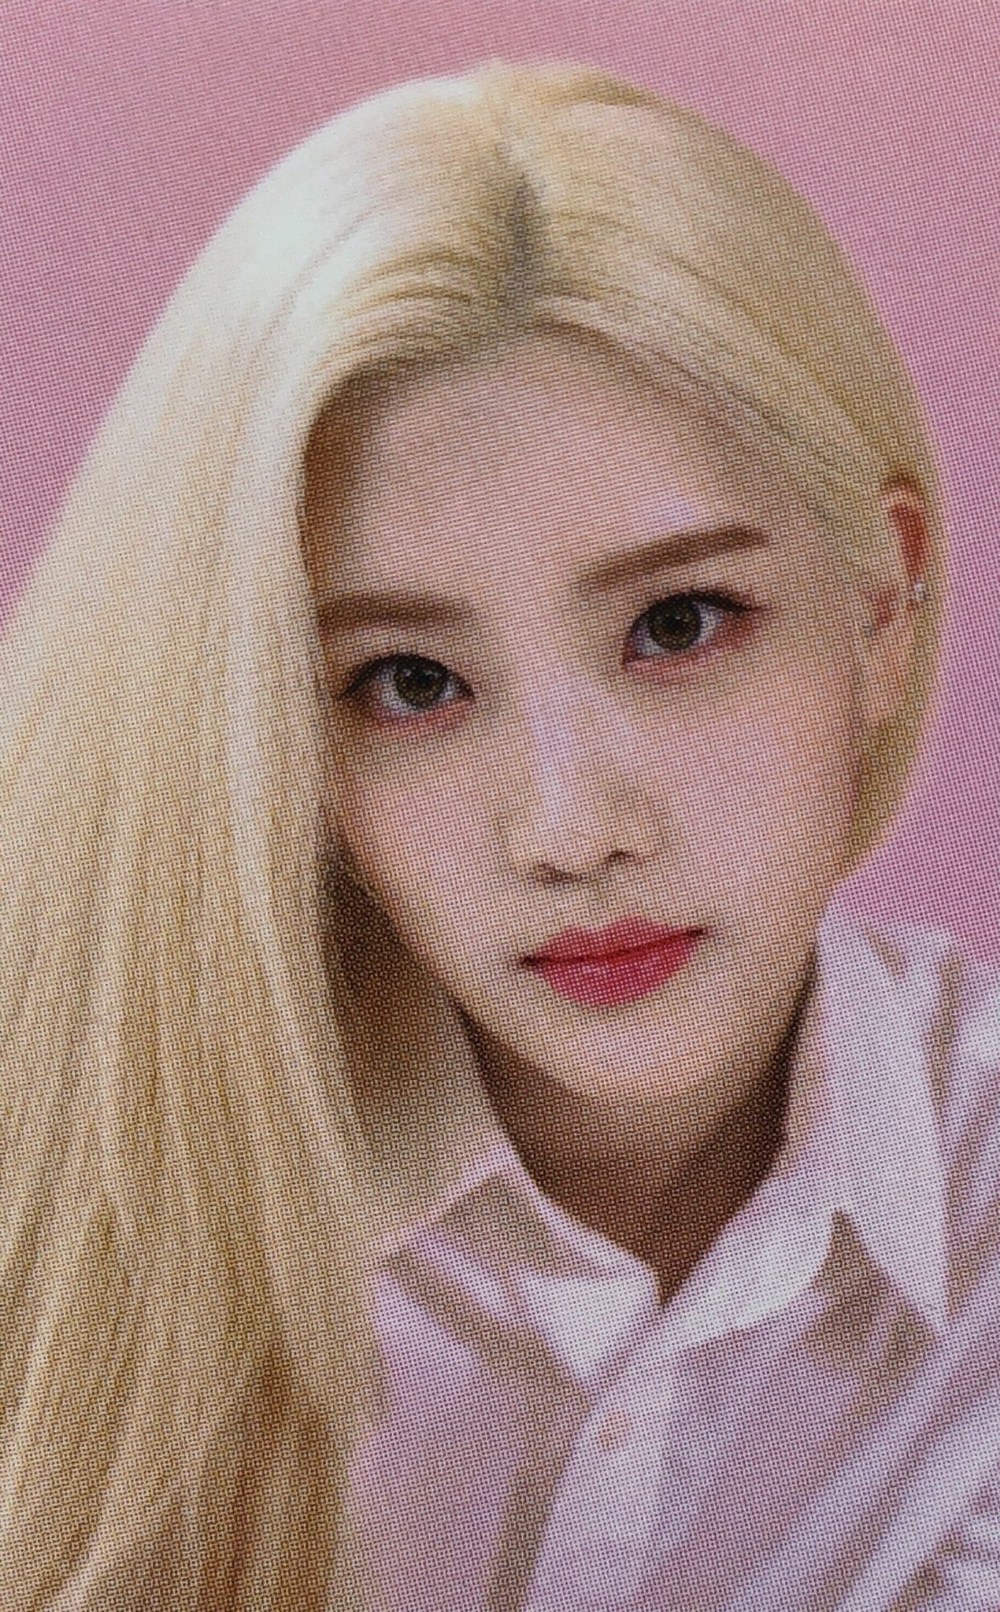 loona updates ☾ on Twitter